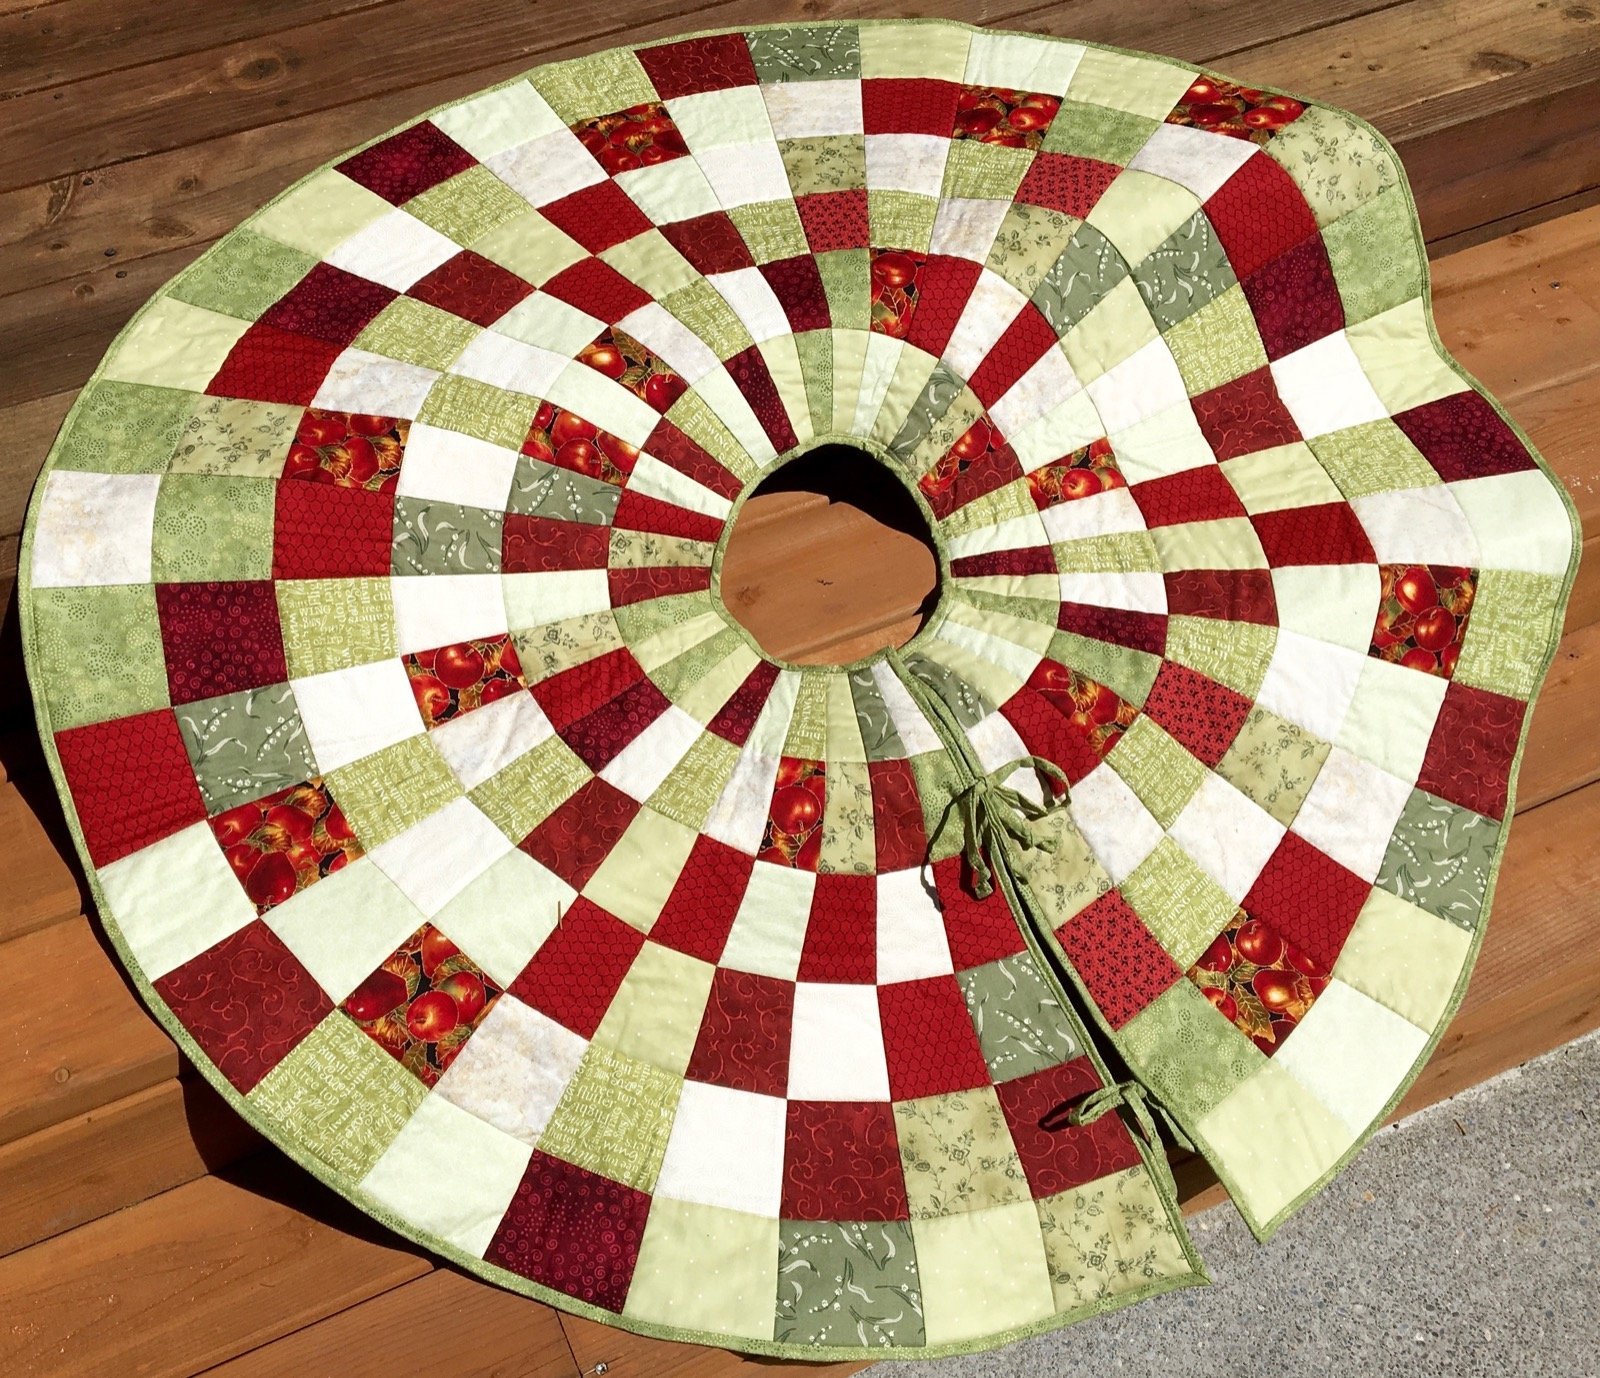 Easy Knitting Pattern For Christmas Tree Skirt : Free quilted christmas tree skirt patterns guide